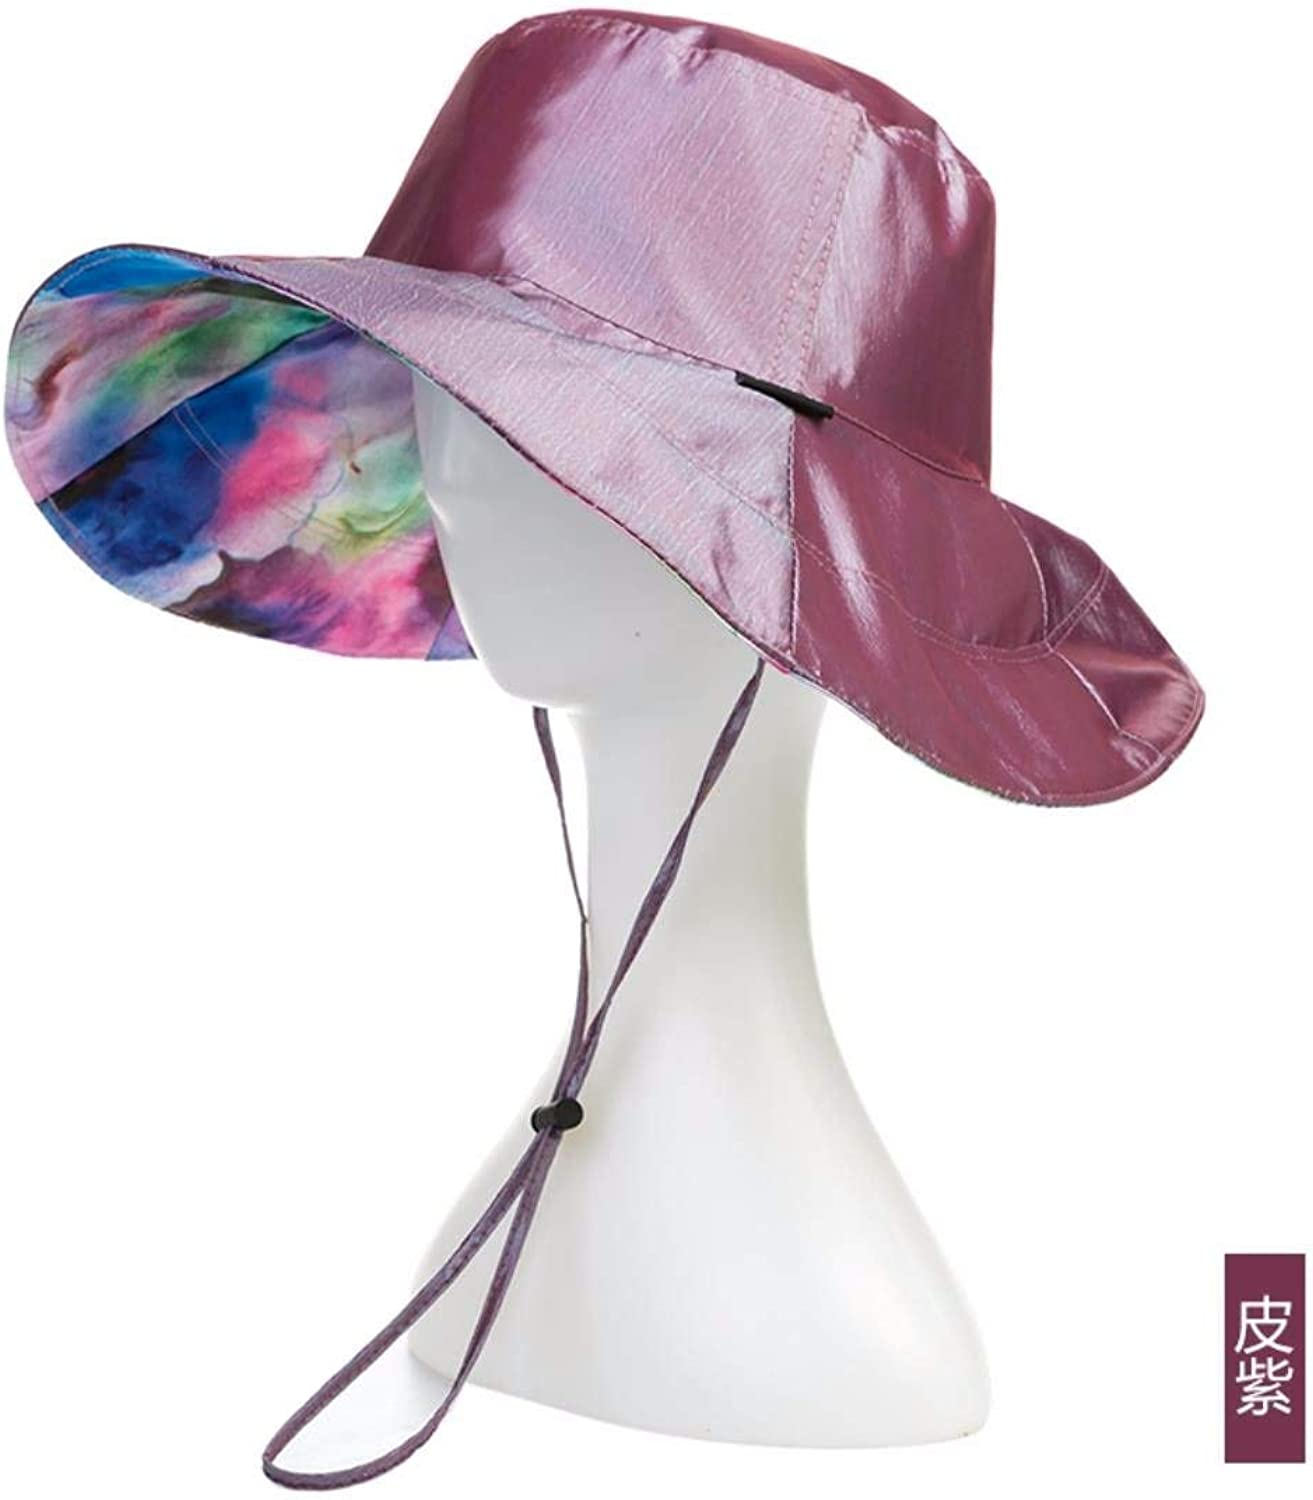 BRNEBN Gift for Mom Gift for grandmother Caps can be folded summer summer sun hateach capat travel hat outdoor hat.